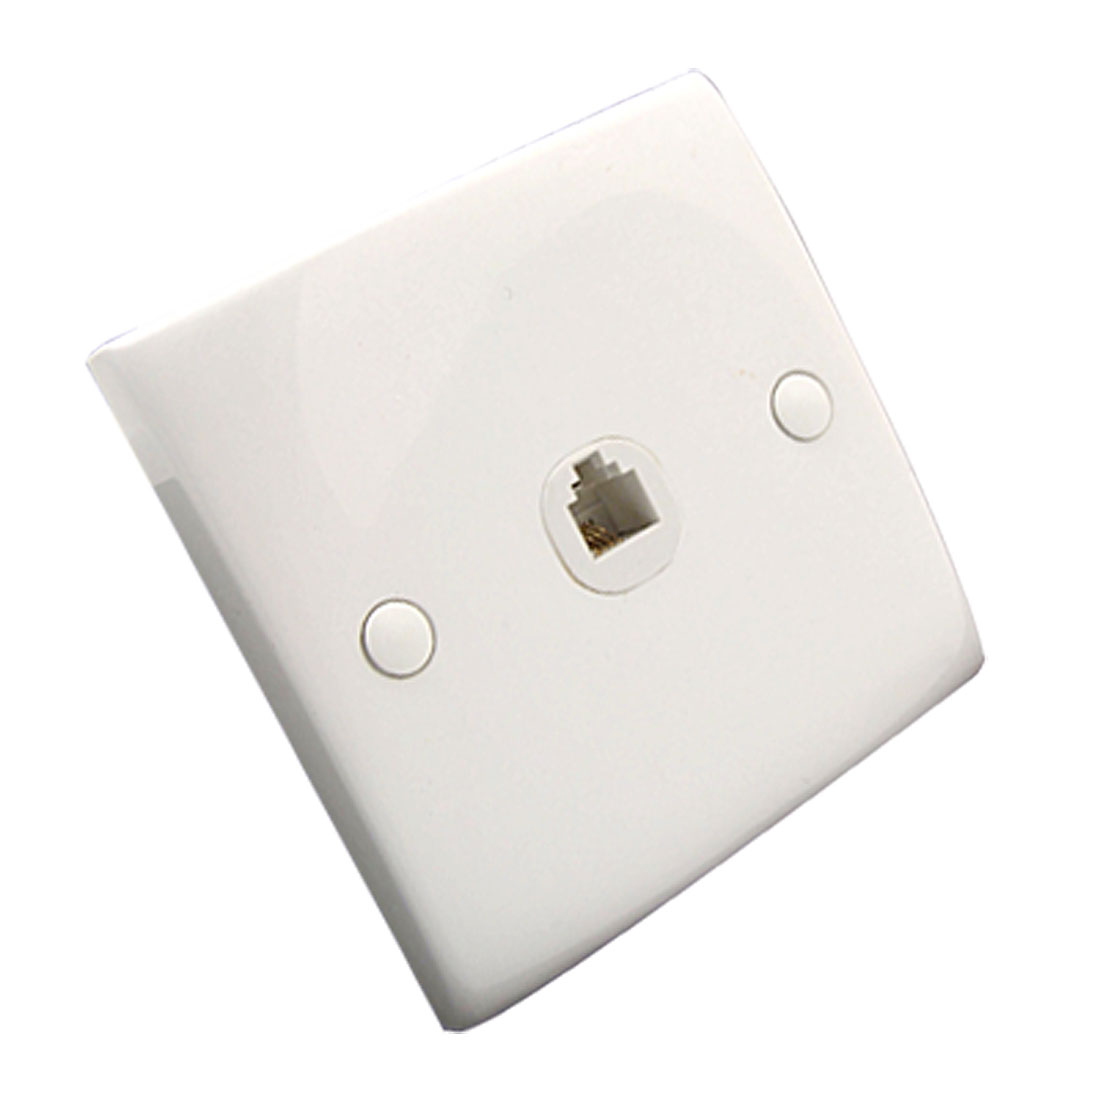 Single Gang 4 Pin RJ11 Telephone Female Jack Outlet Wall Plate